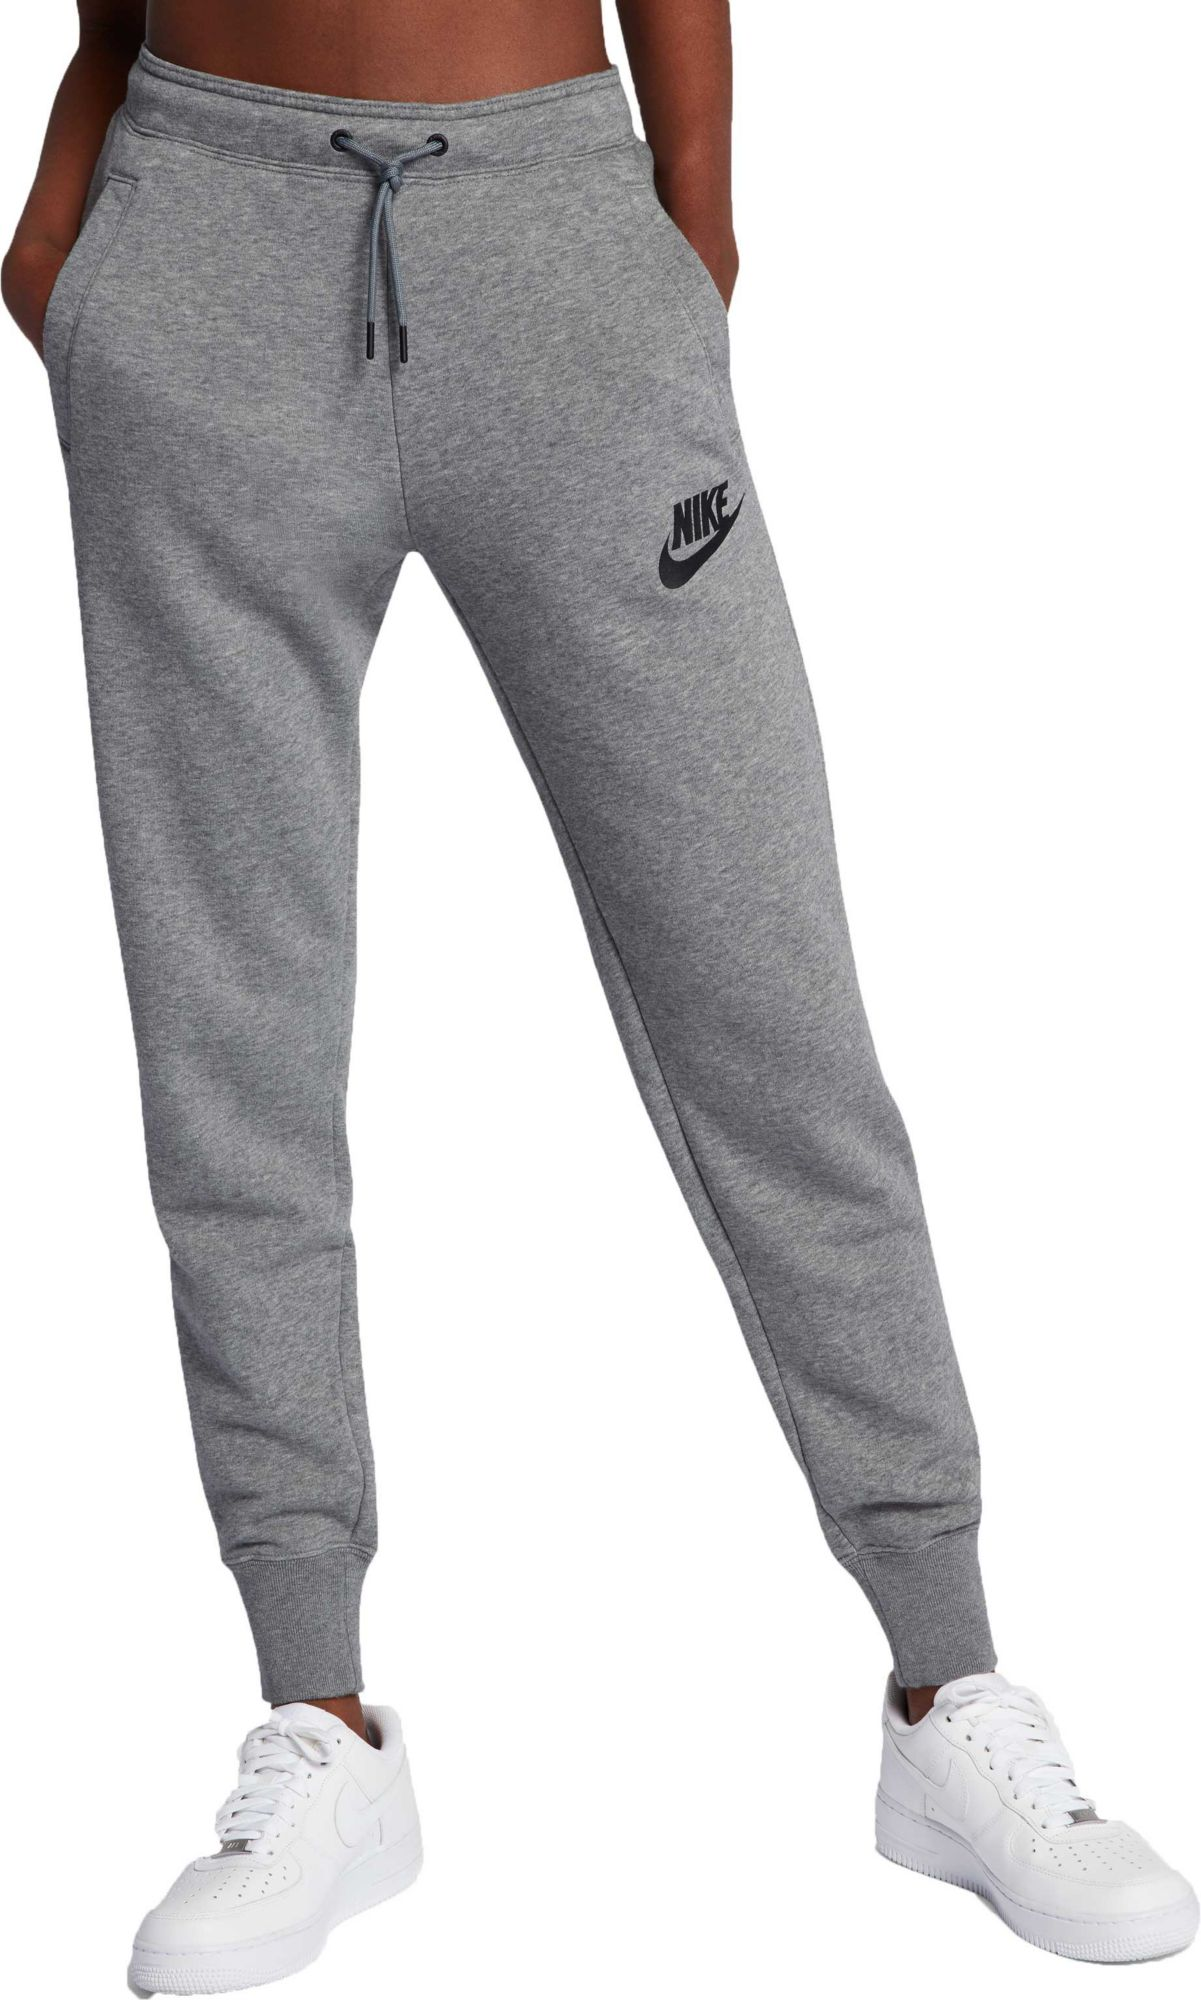 b5b9df7a64e1 Nike Women s Sportswear Rally Joggers in 2019